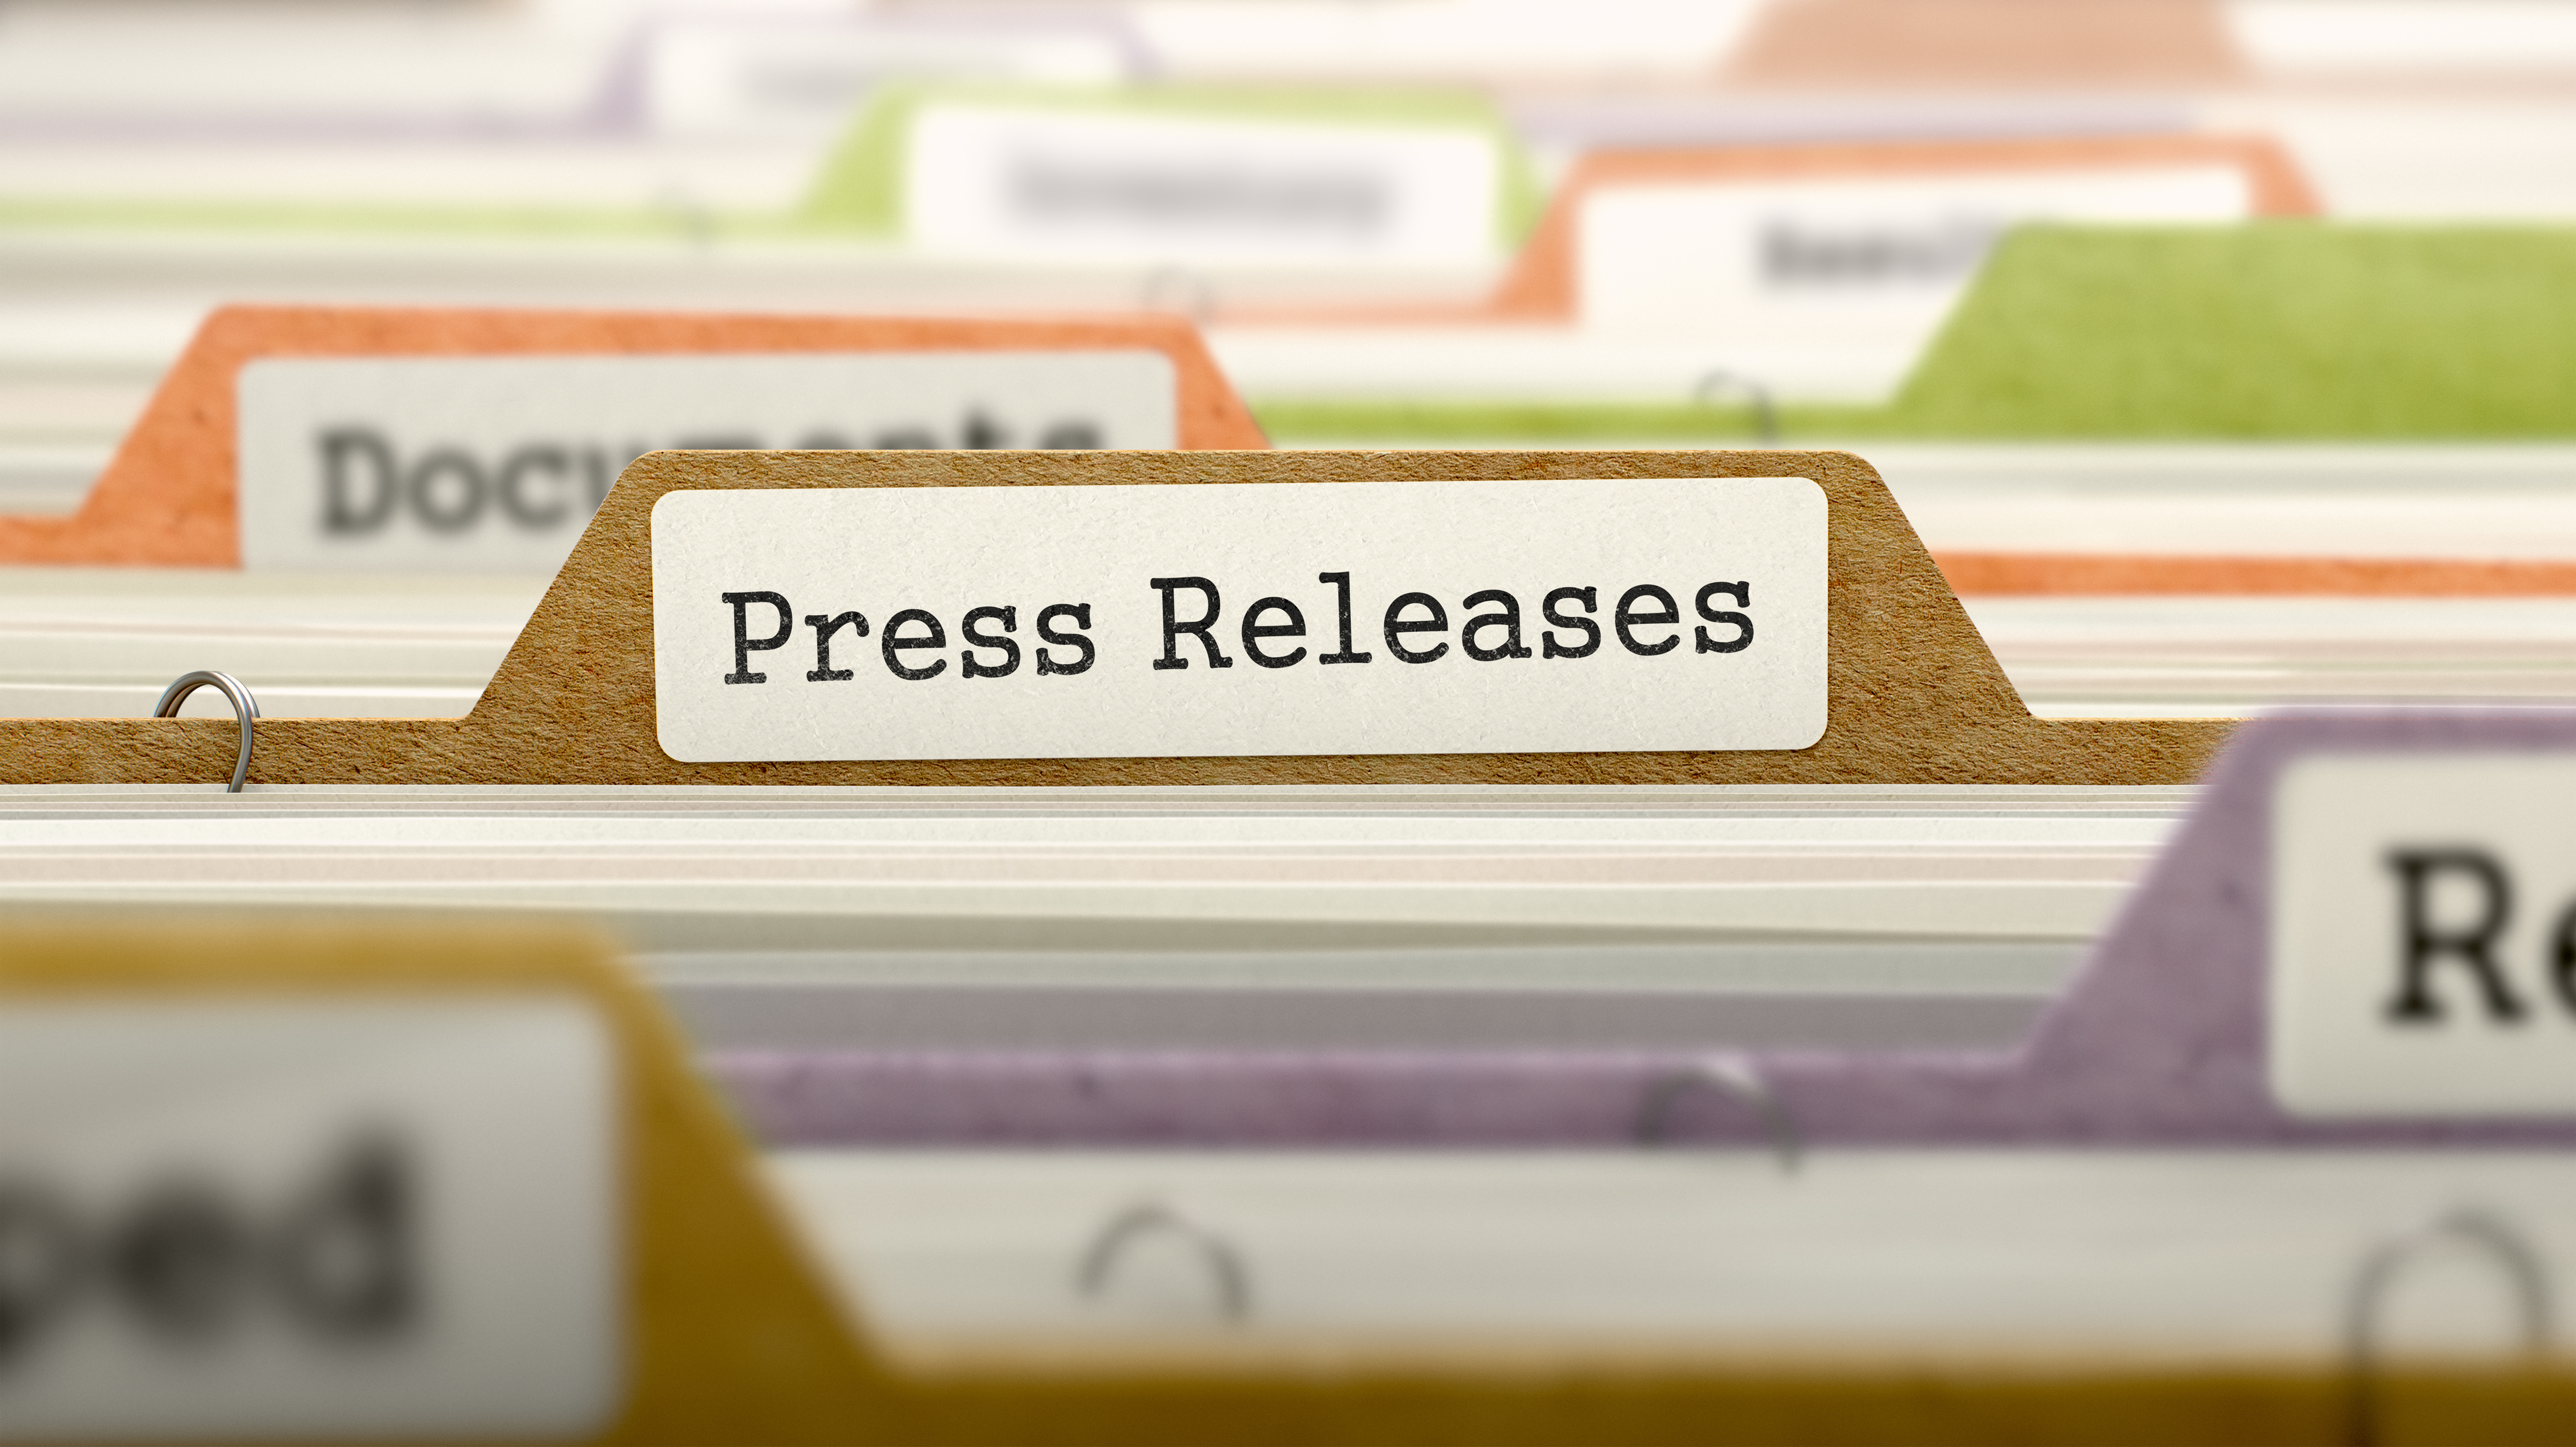 5 Reasons Press Releases Are Important and How to Write Them